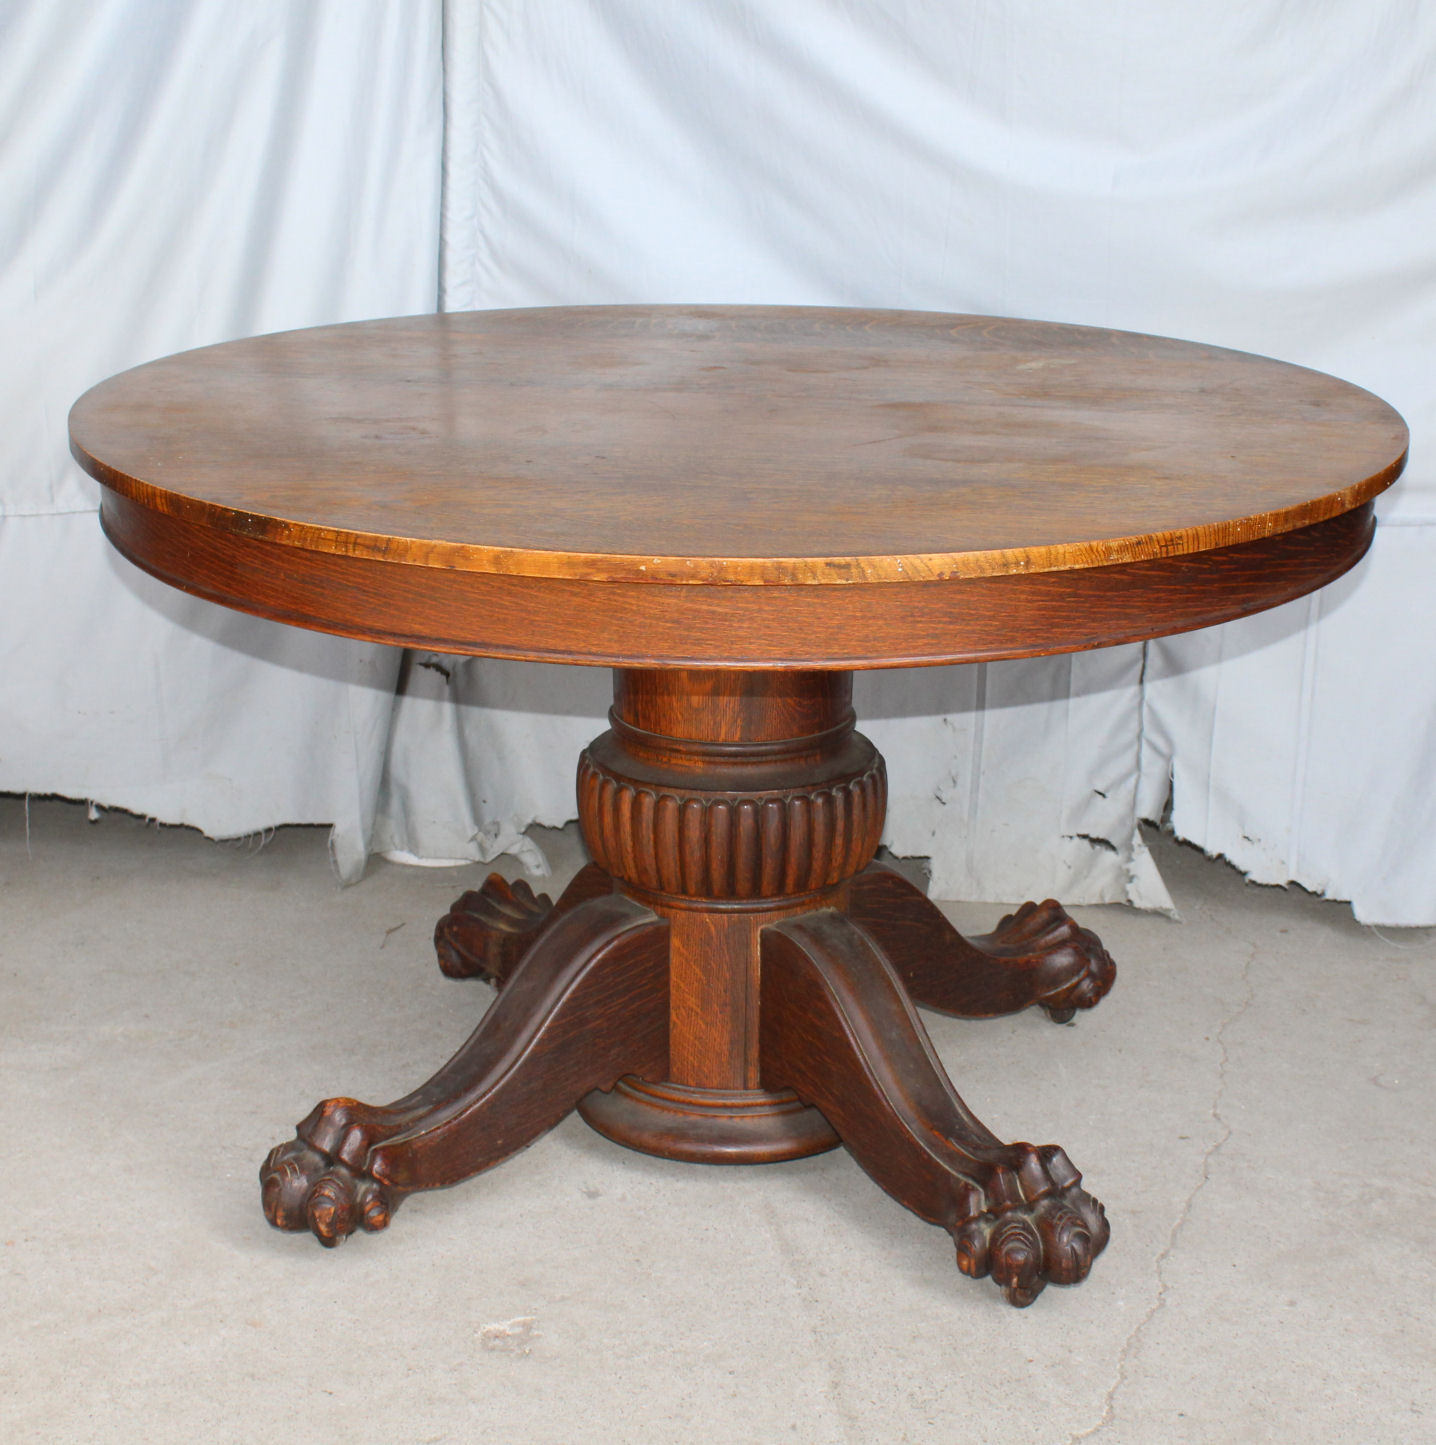 antique round dining room table | Bargain John's Antiques | Antique Round Oak Dining Table ...